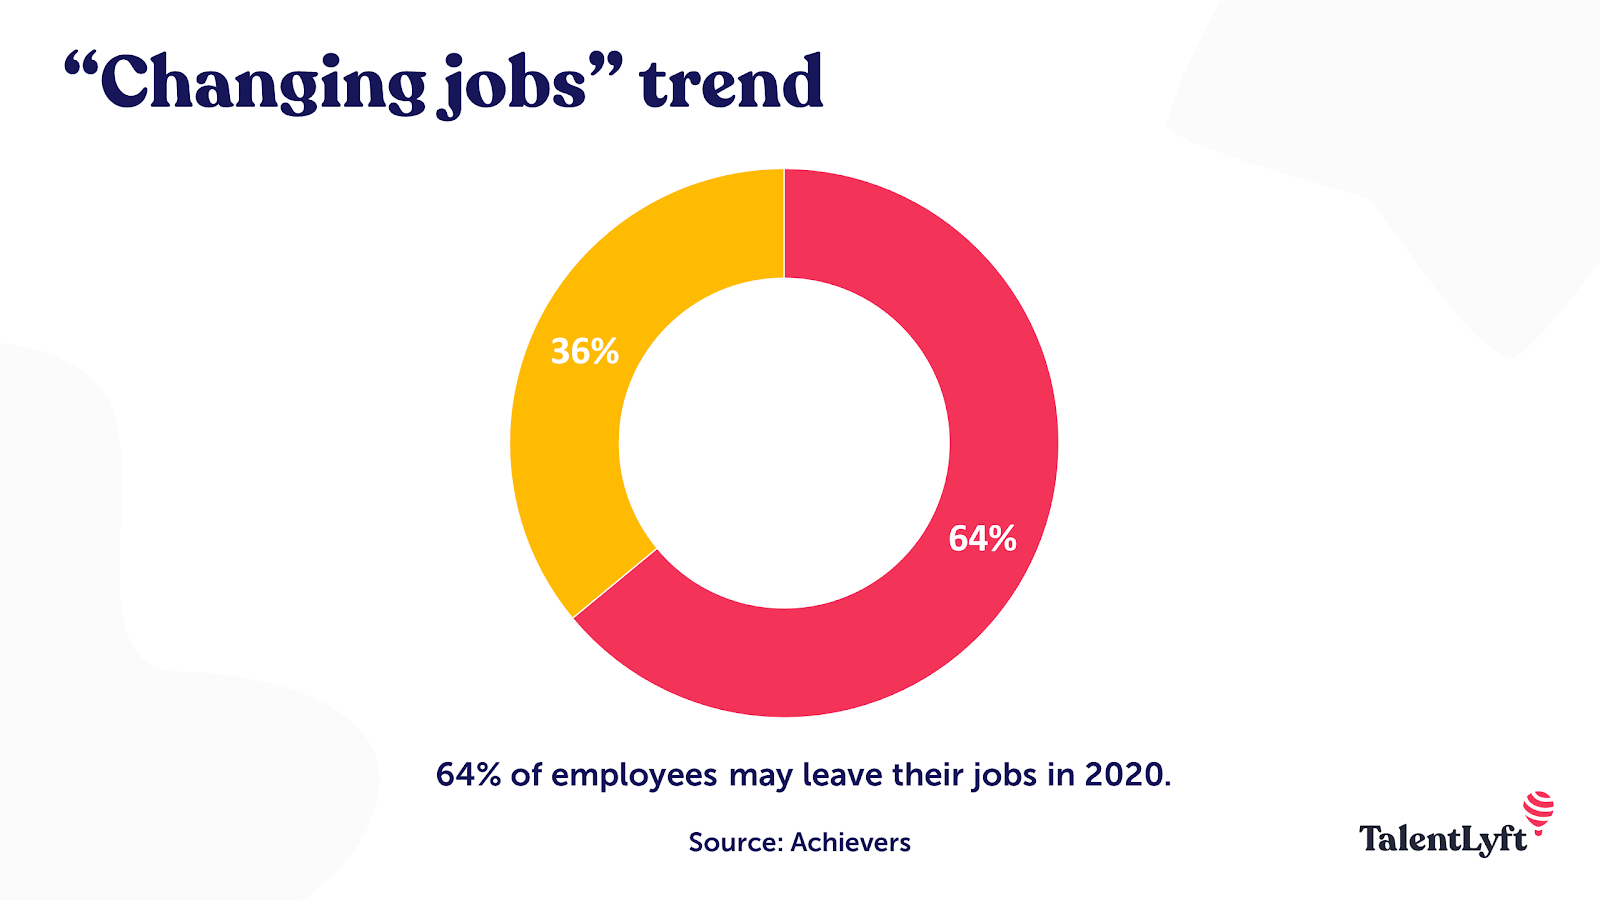 Changing jobs trend 2020 stat